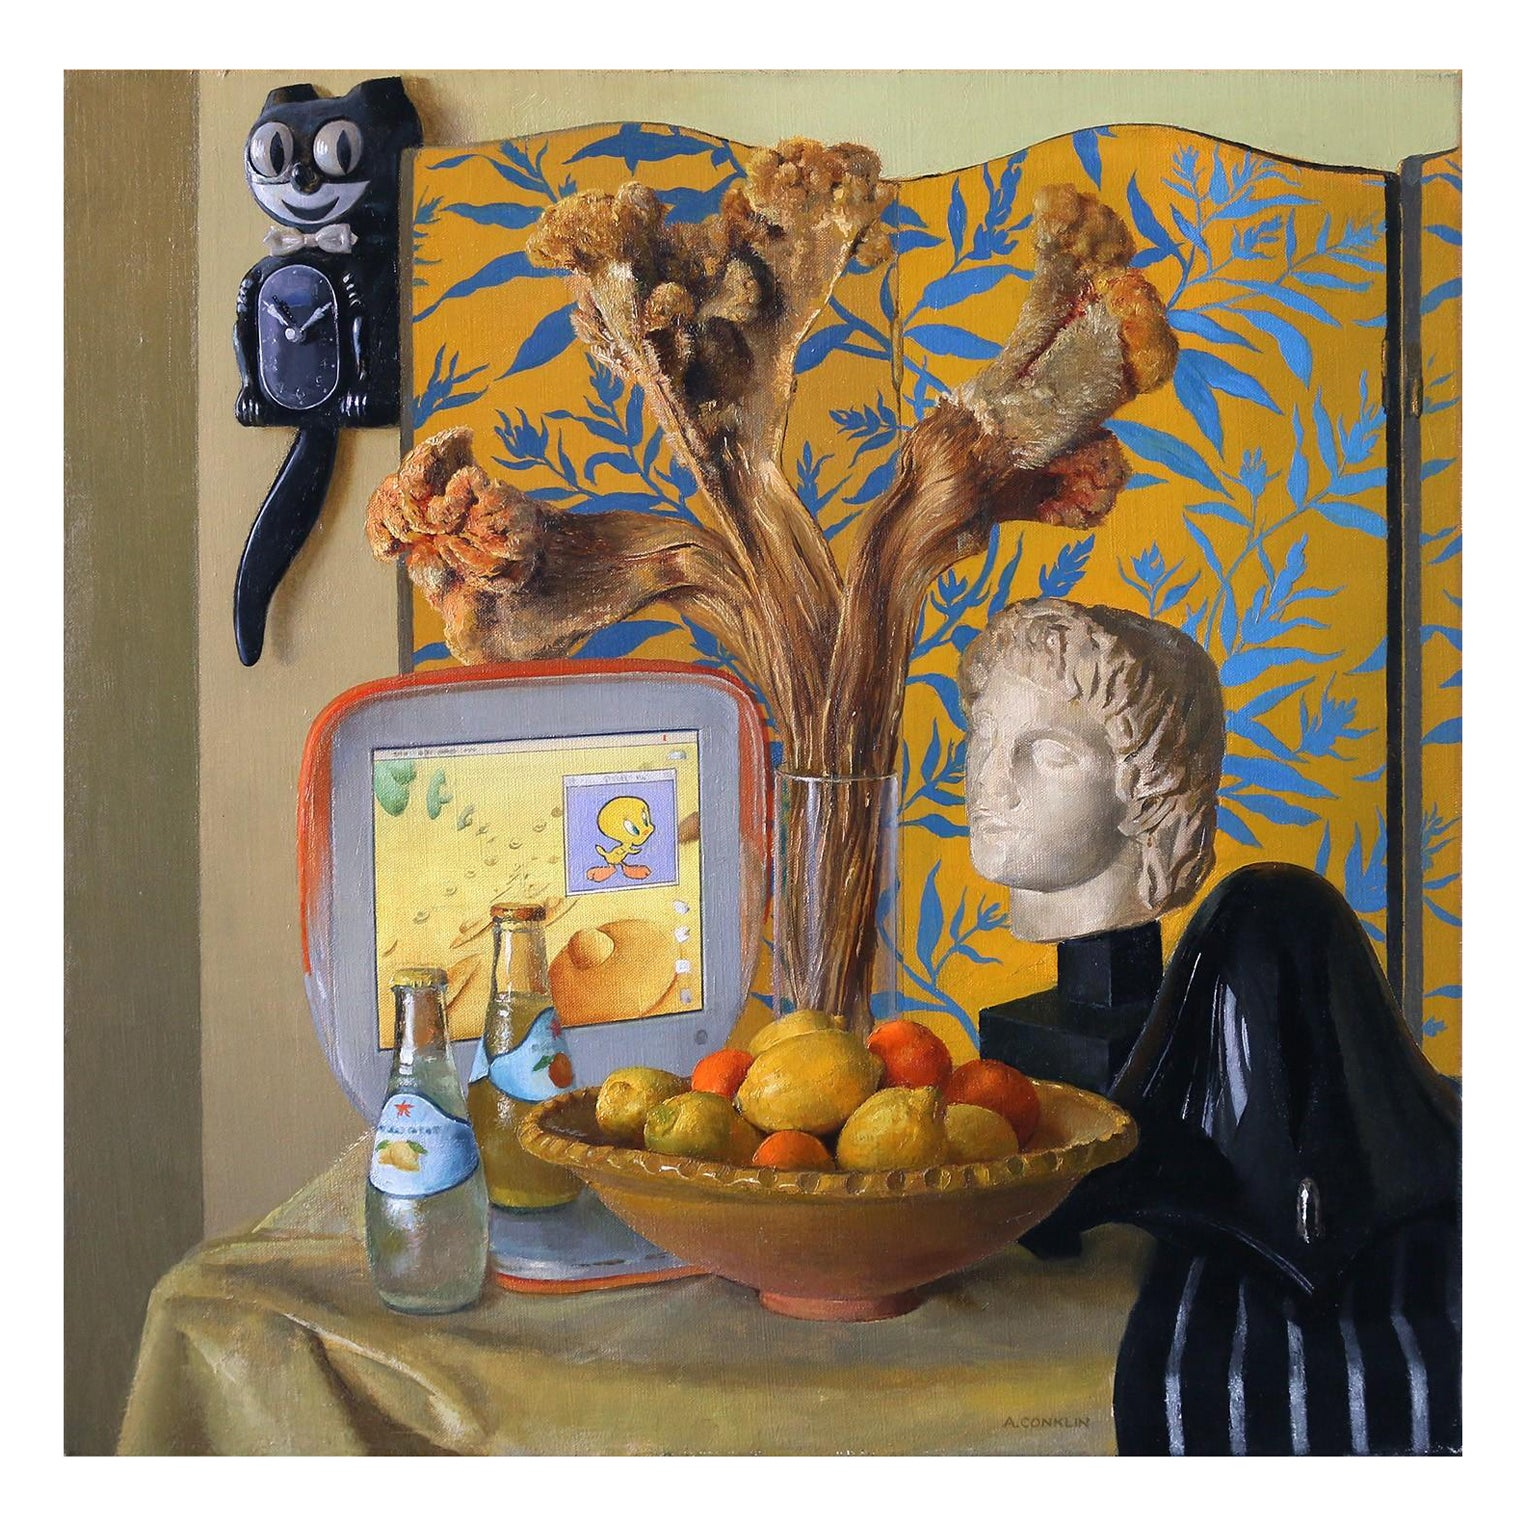 Still Life with Alexander Bust and iBook, Original Oil Painting, Framed